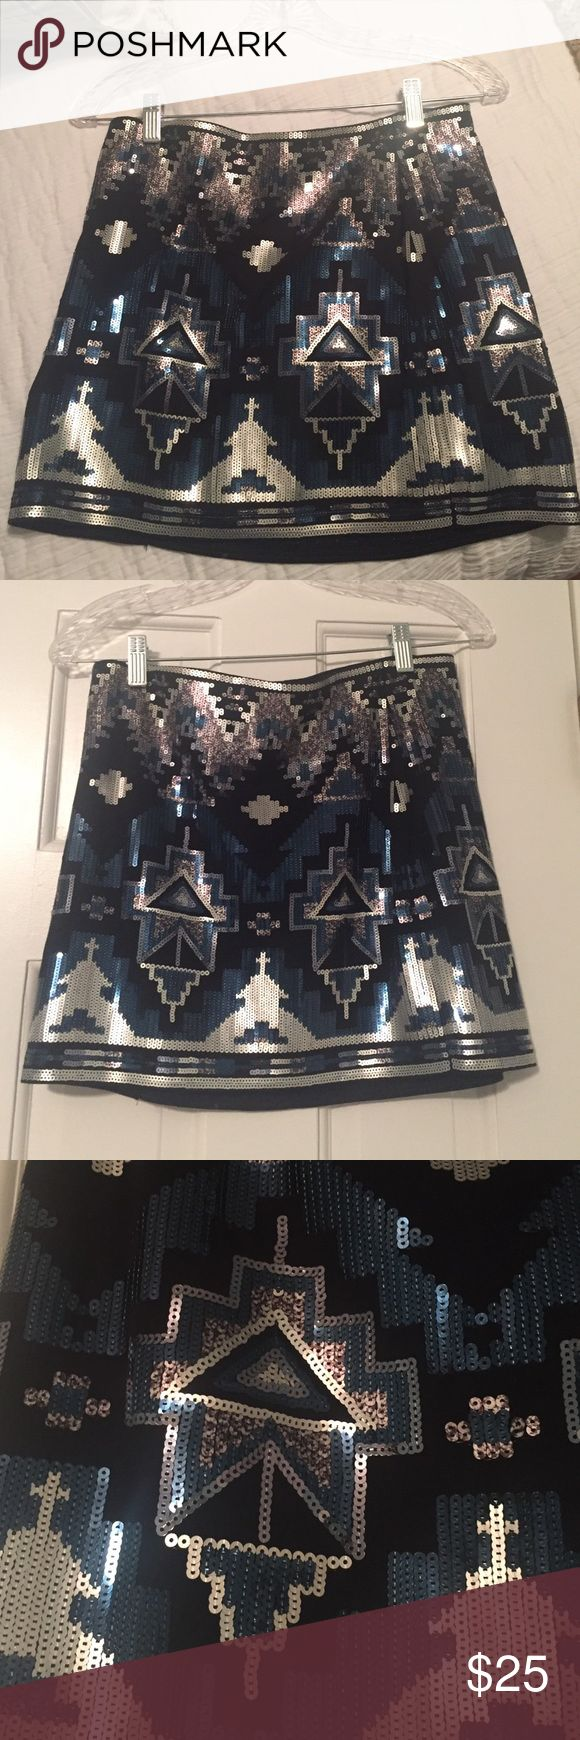 """Sequin mini skirt Sequin mini skirt from express. 15"""". Stretchy so can fit variety of shapes. Perfect for New Year's Eve. Looks great with black tights. New with tags. I'm 5'3 and a size 0-2. Express Skirts Mini"""